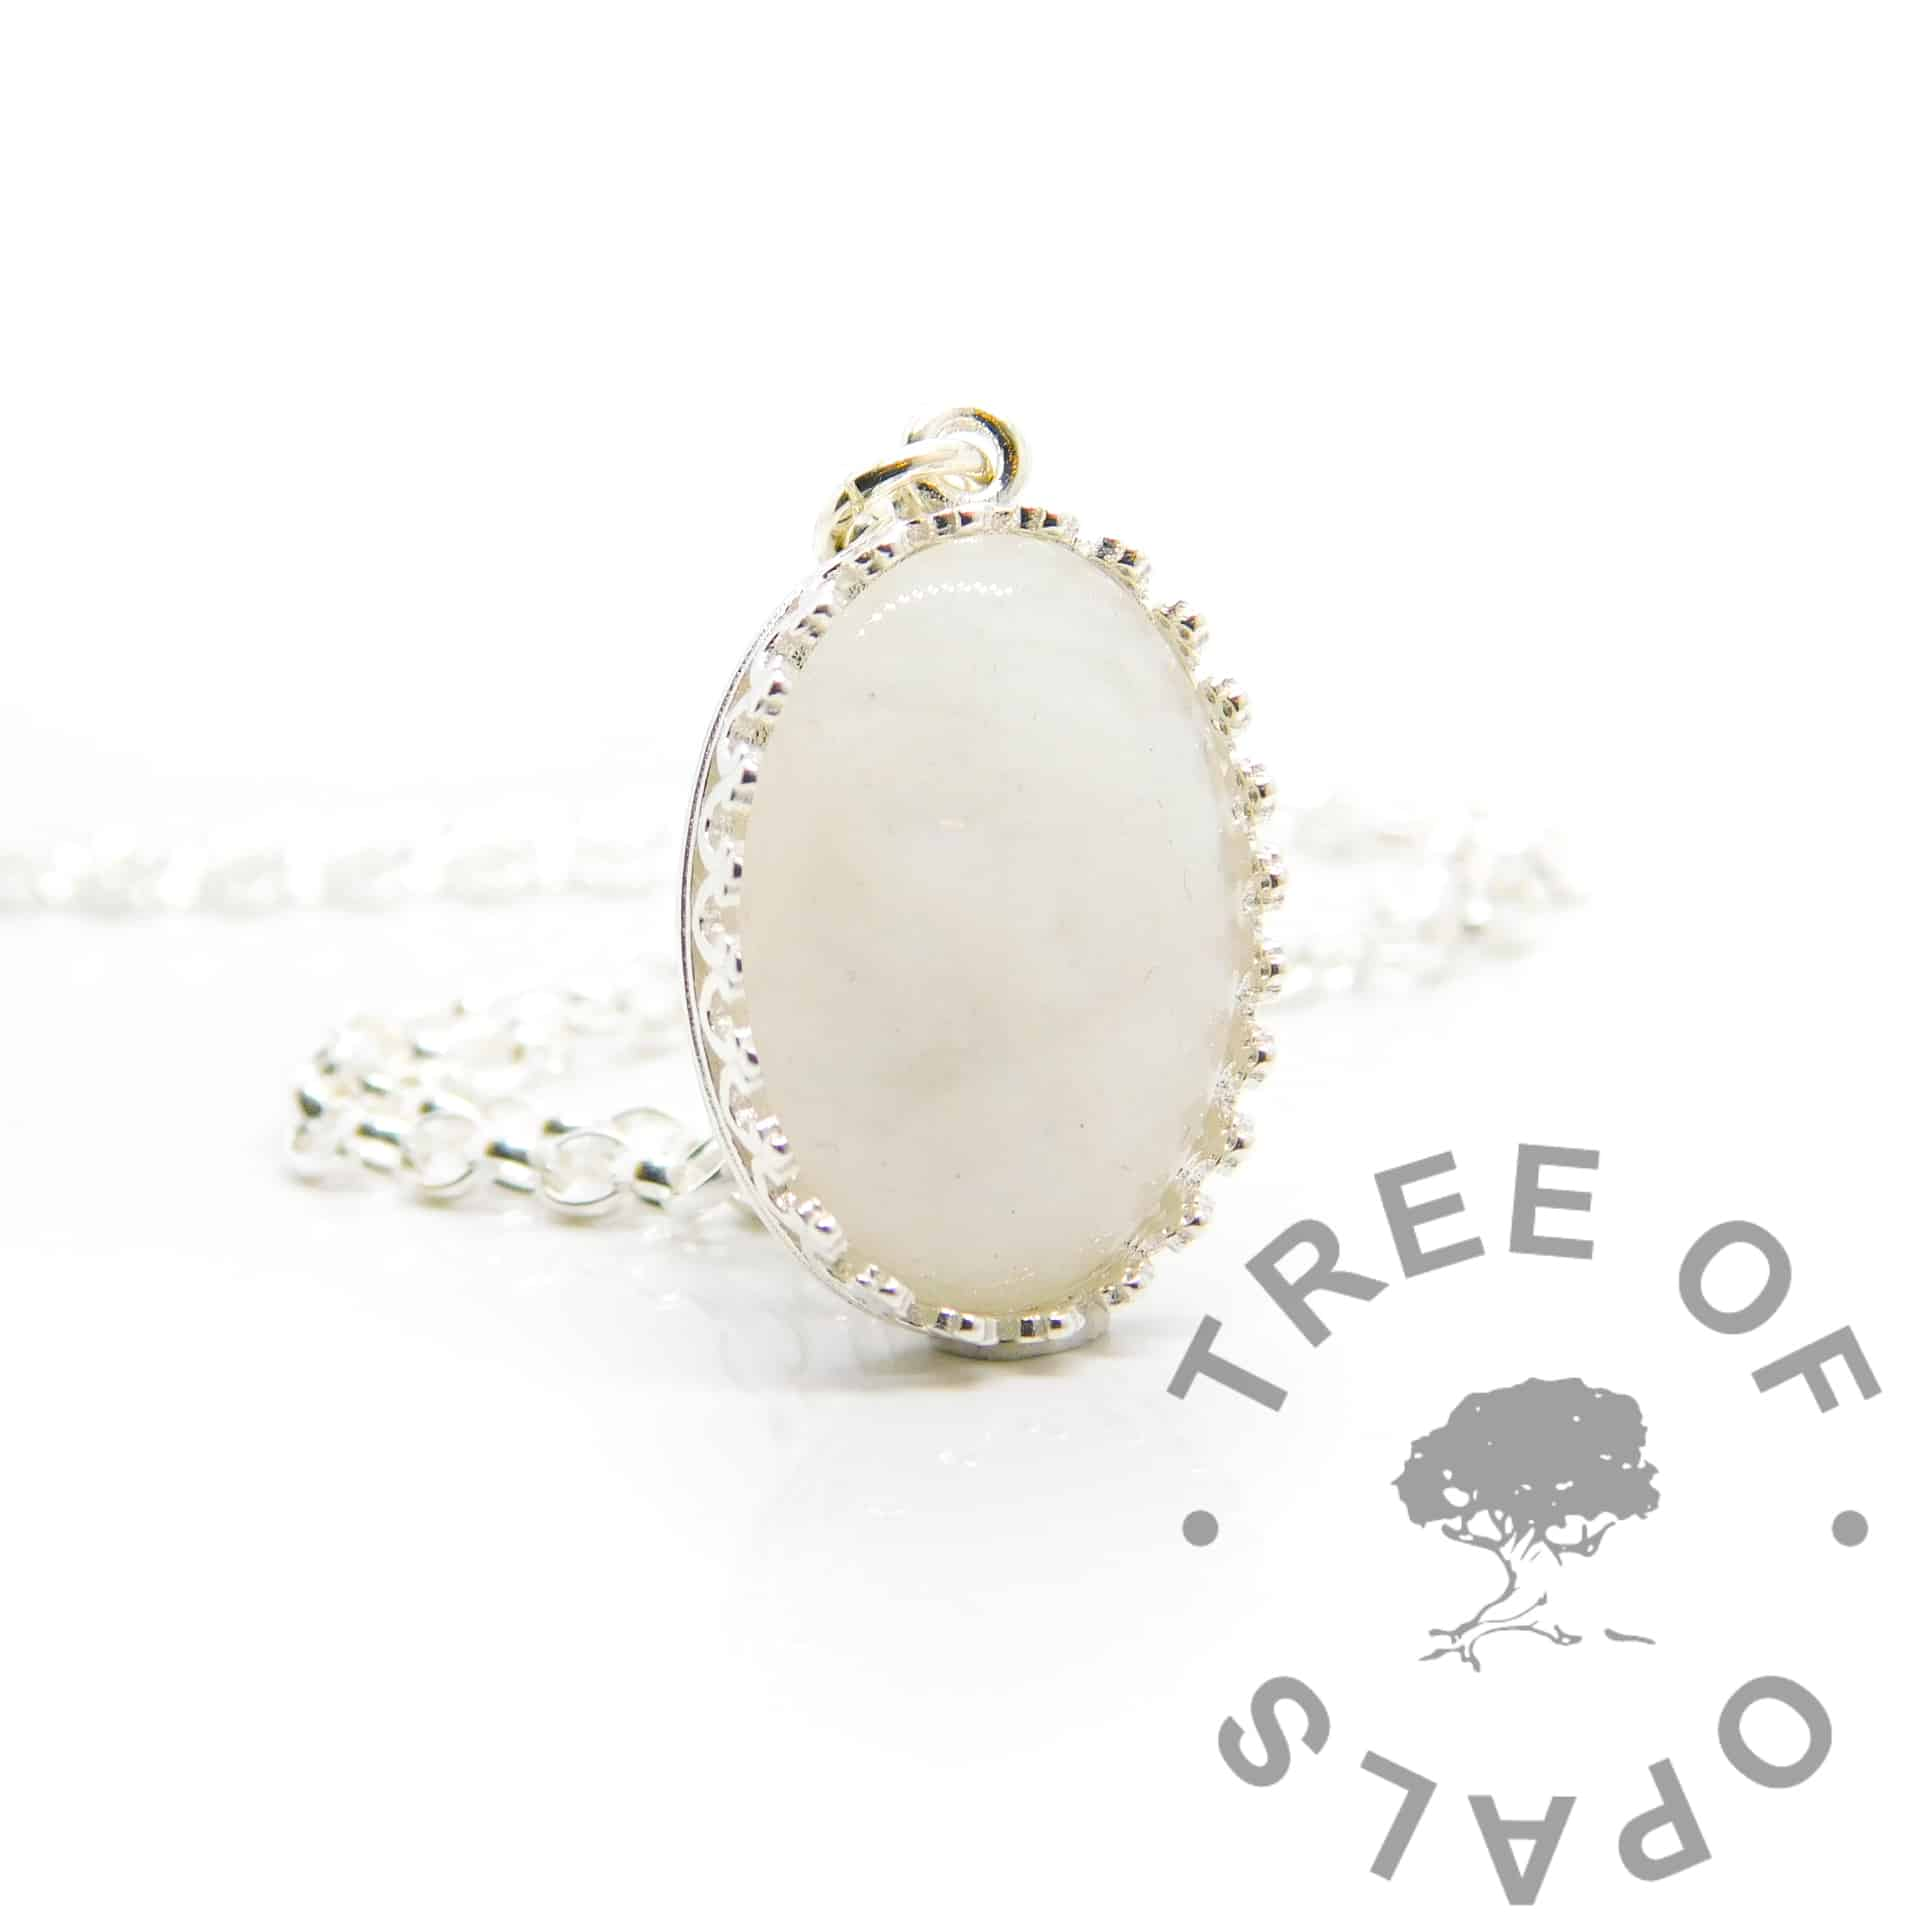 Classic breastmilk oval necklace. Crown point oval setting in solid sterling silver, 925 stamped. Shown with a medium classic chain (not included)